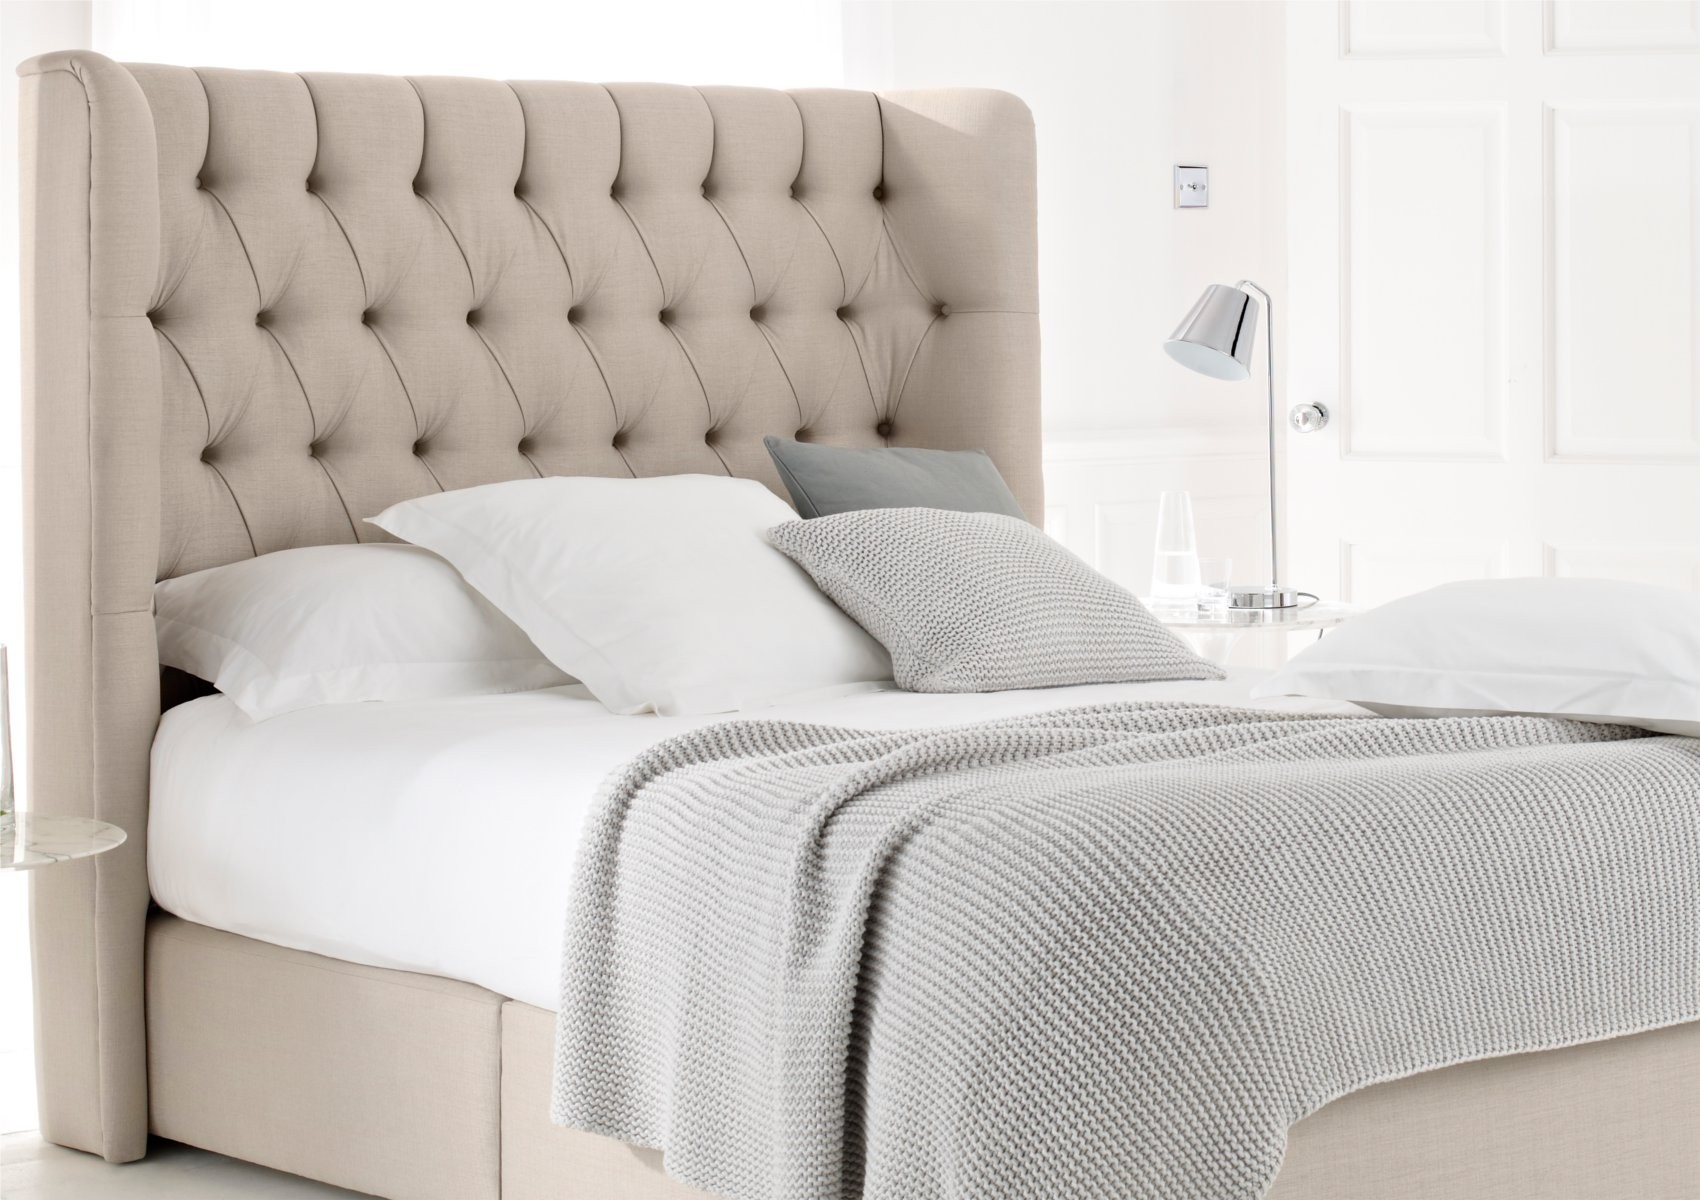 king upholstered headboard king size tufted upholstered headboard with luxury tufted king headboard  and stunning qxgbhjz